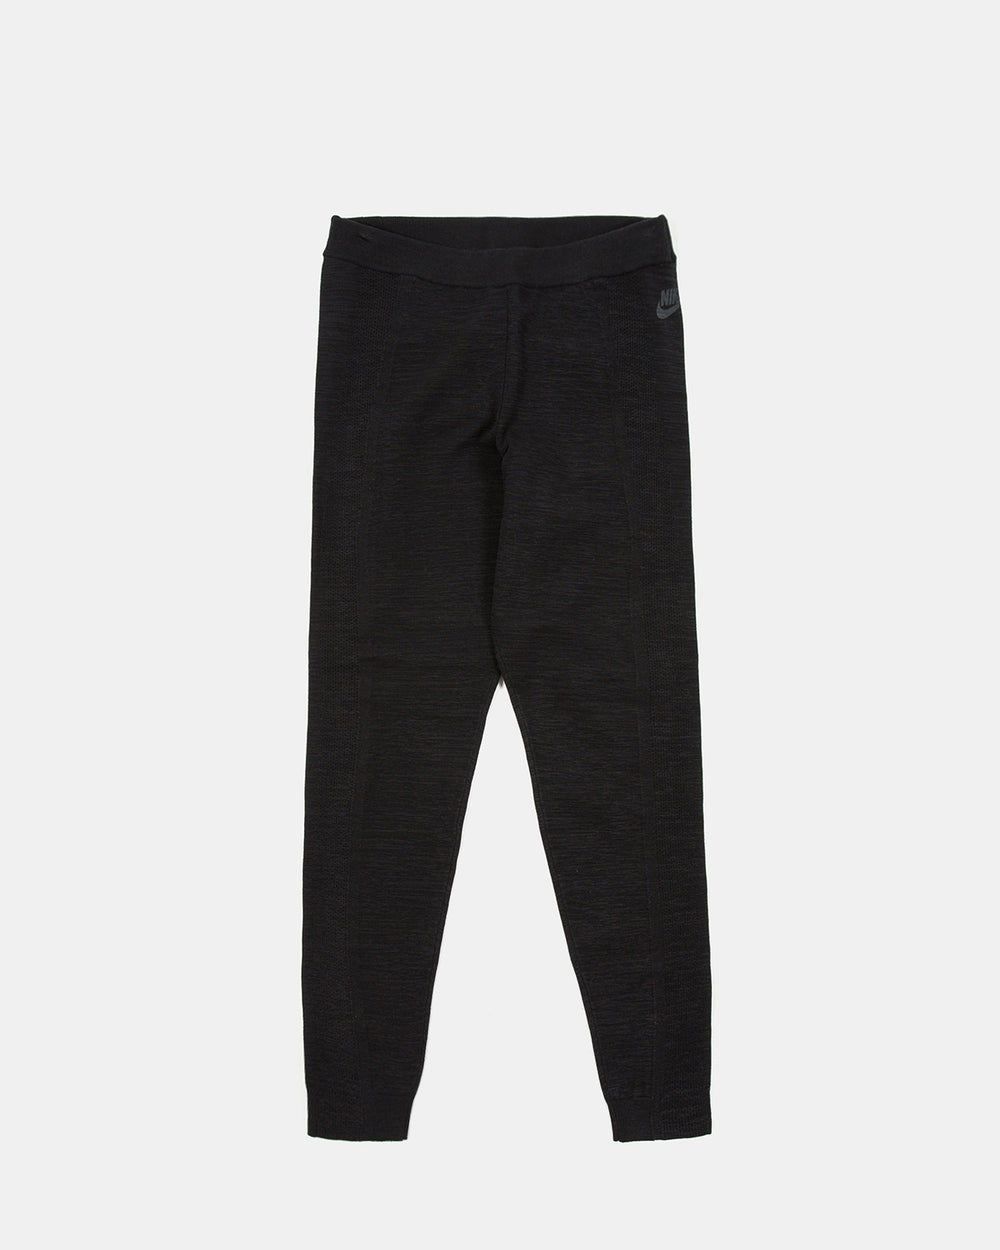 Nike - Women's Tech Knit Legging (Black)